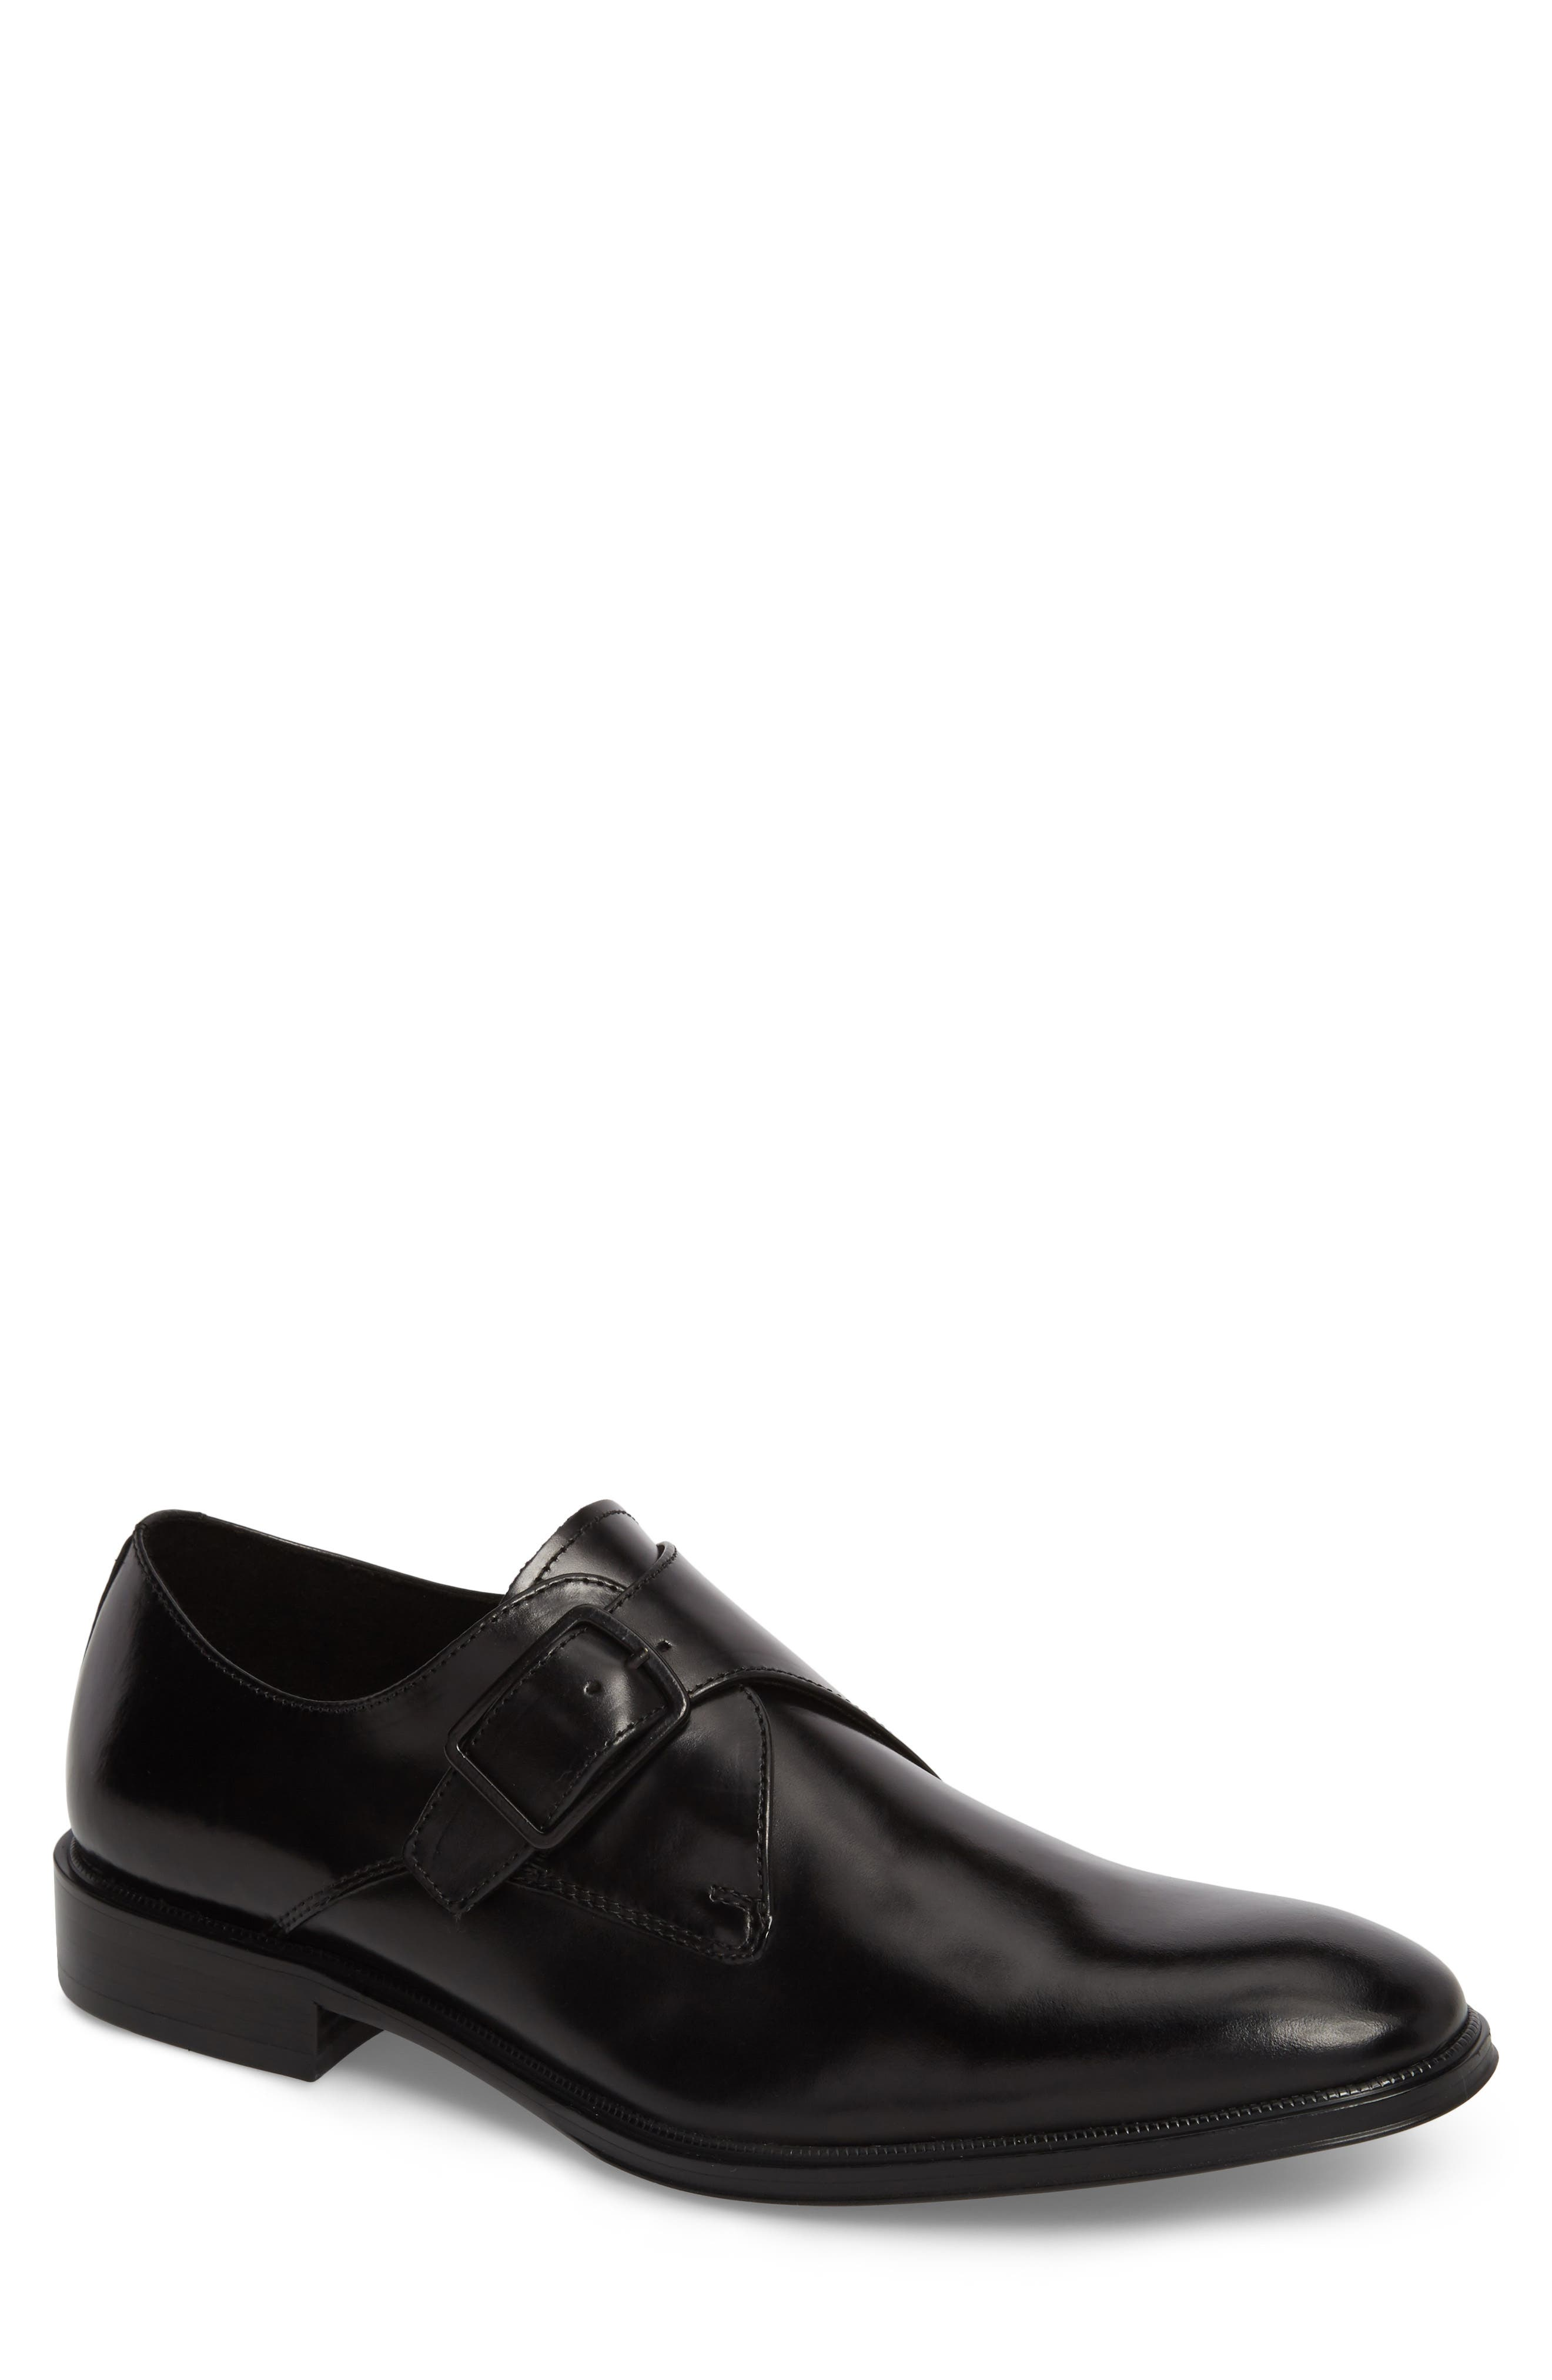 Tully Single Buckle Monk Shoe,                             Main thumbnail 1, color,                             BLACK LEATHER